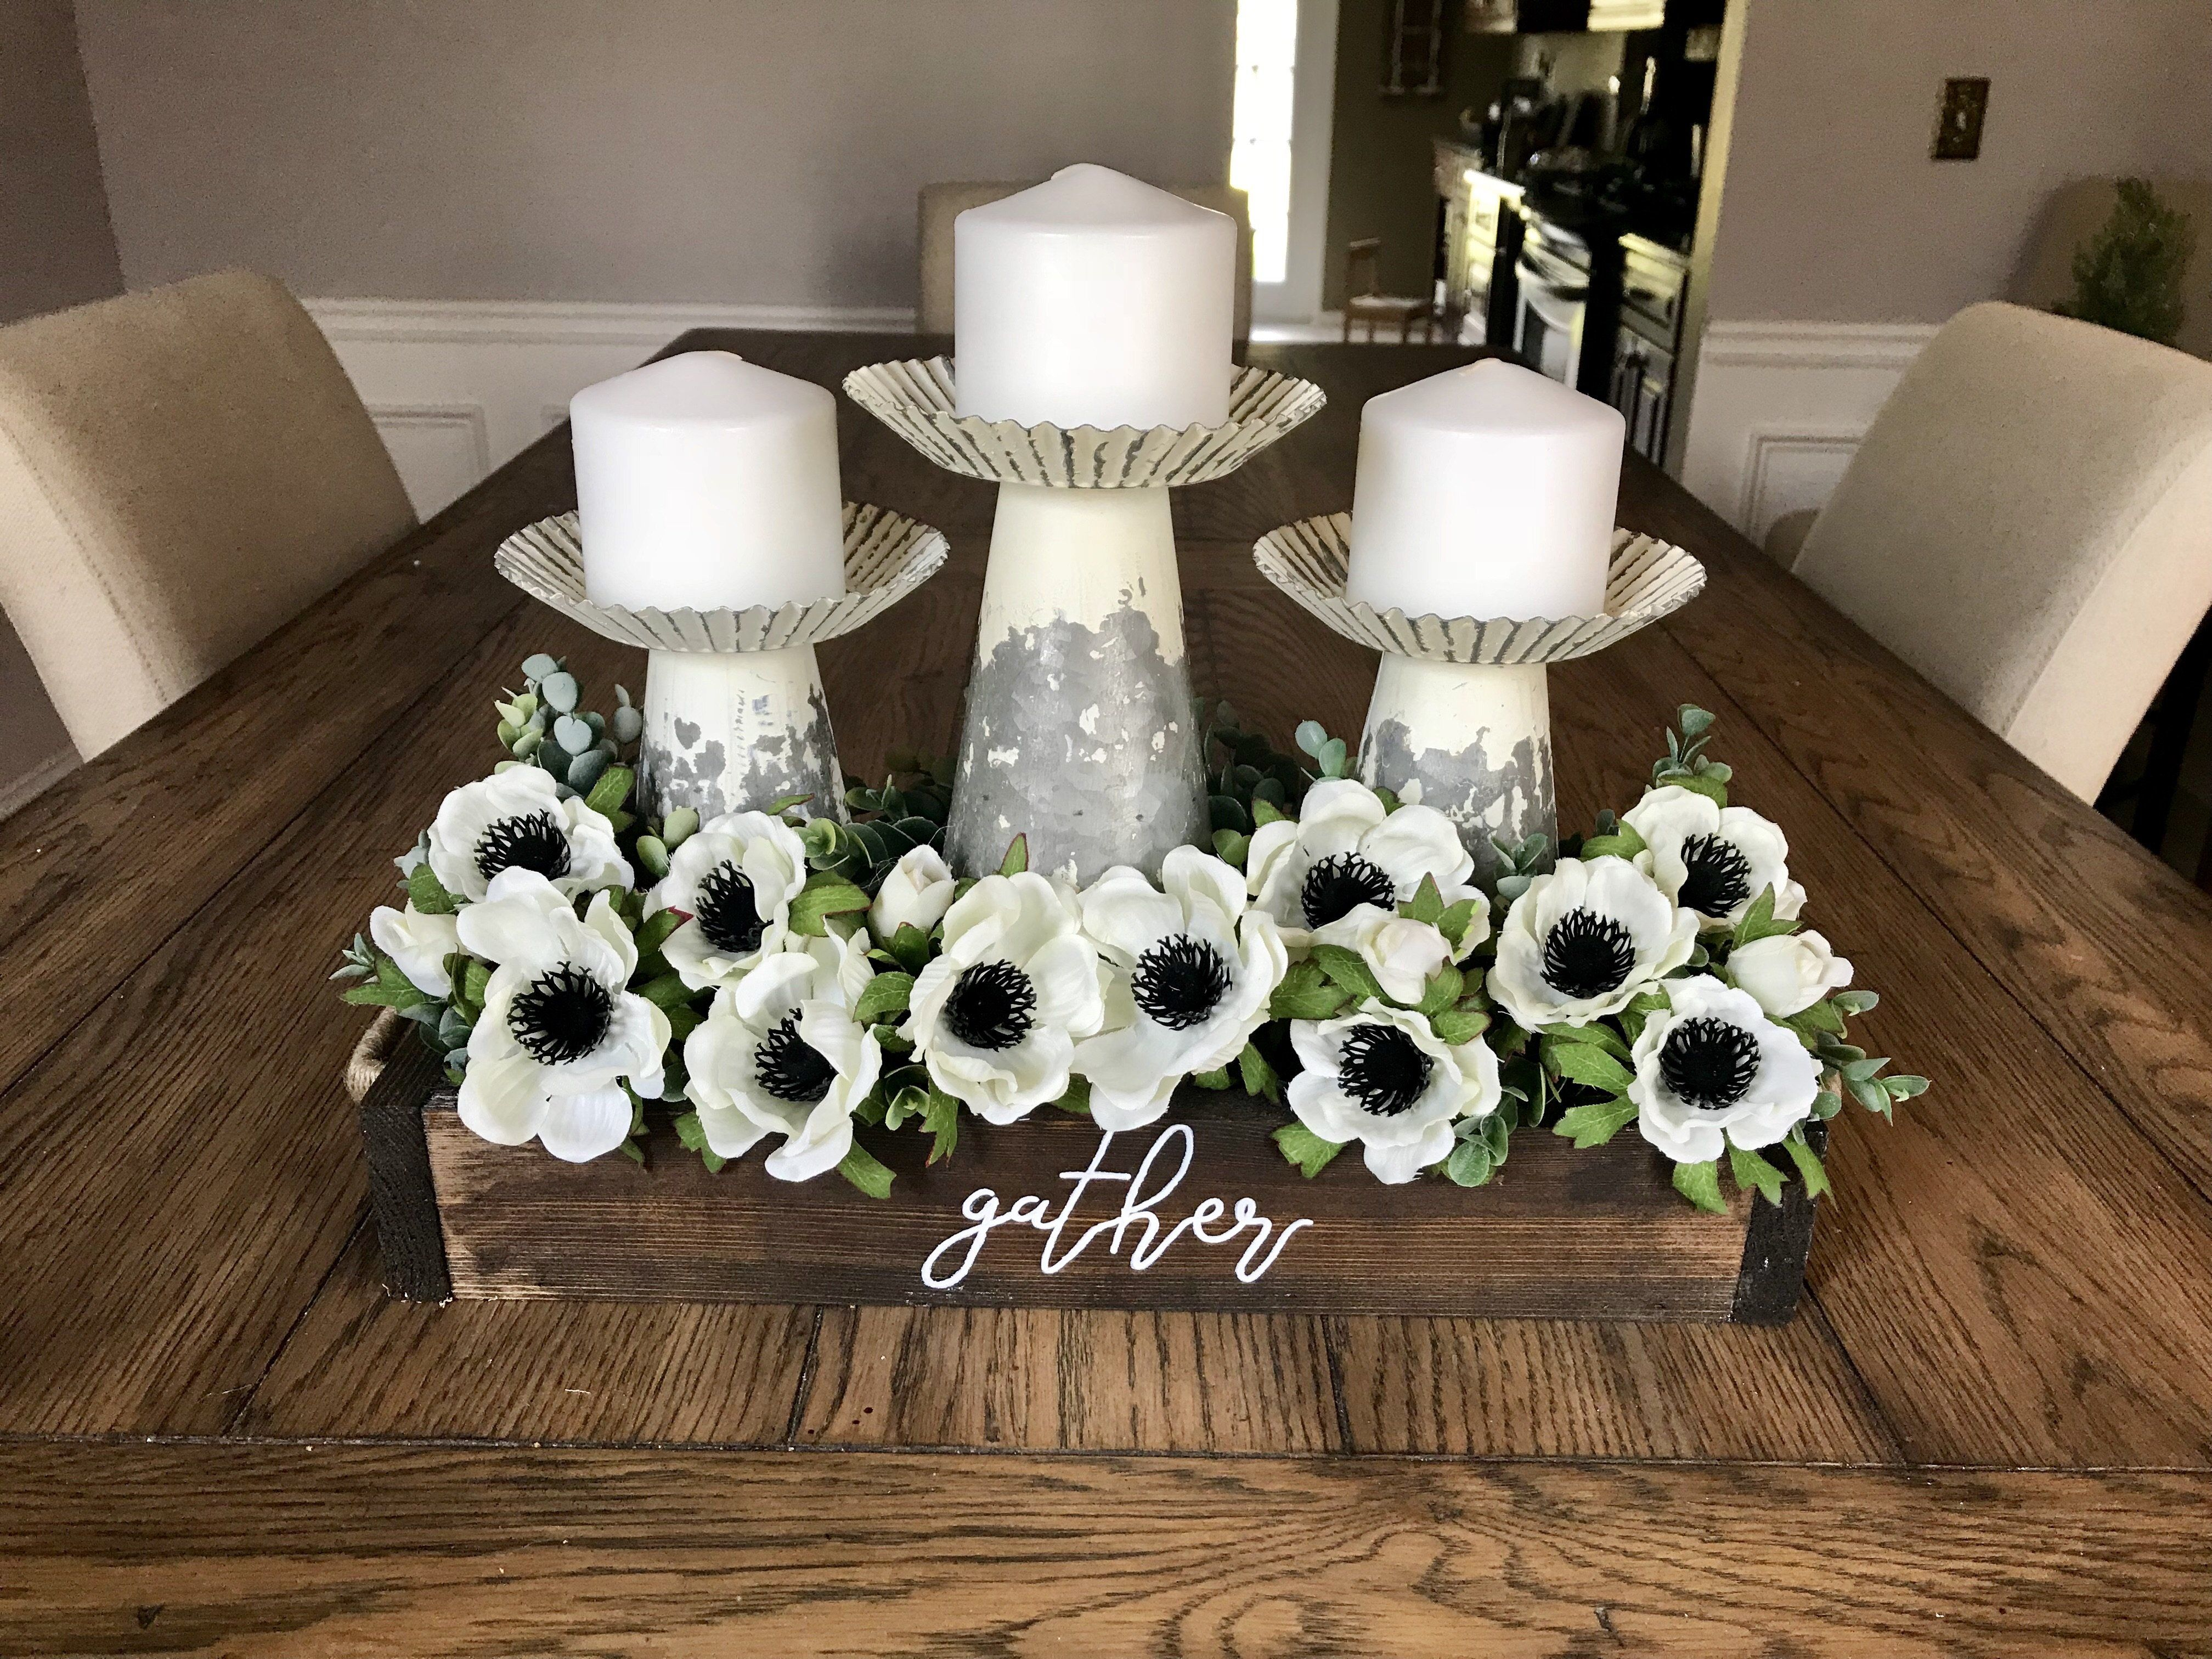 Dining Room Centerpiece With Candles Dining Room Table Centerpieces Rustic Farmhouse Dining Table Dinning Room Centerpieces